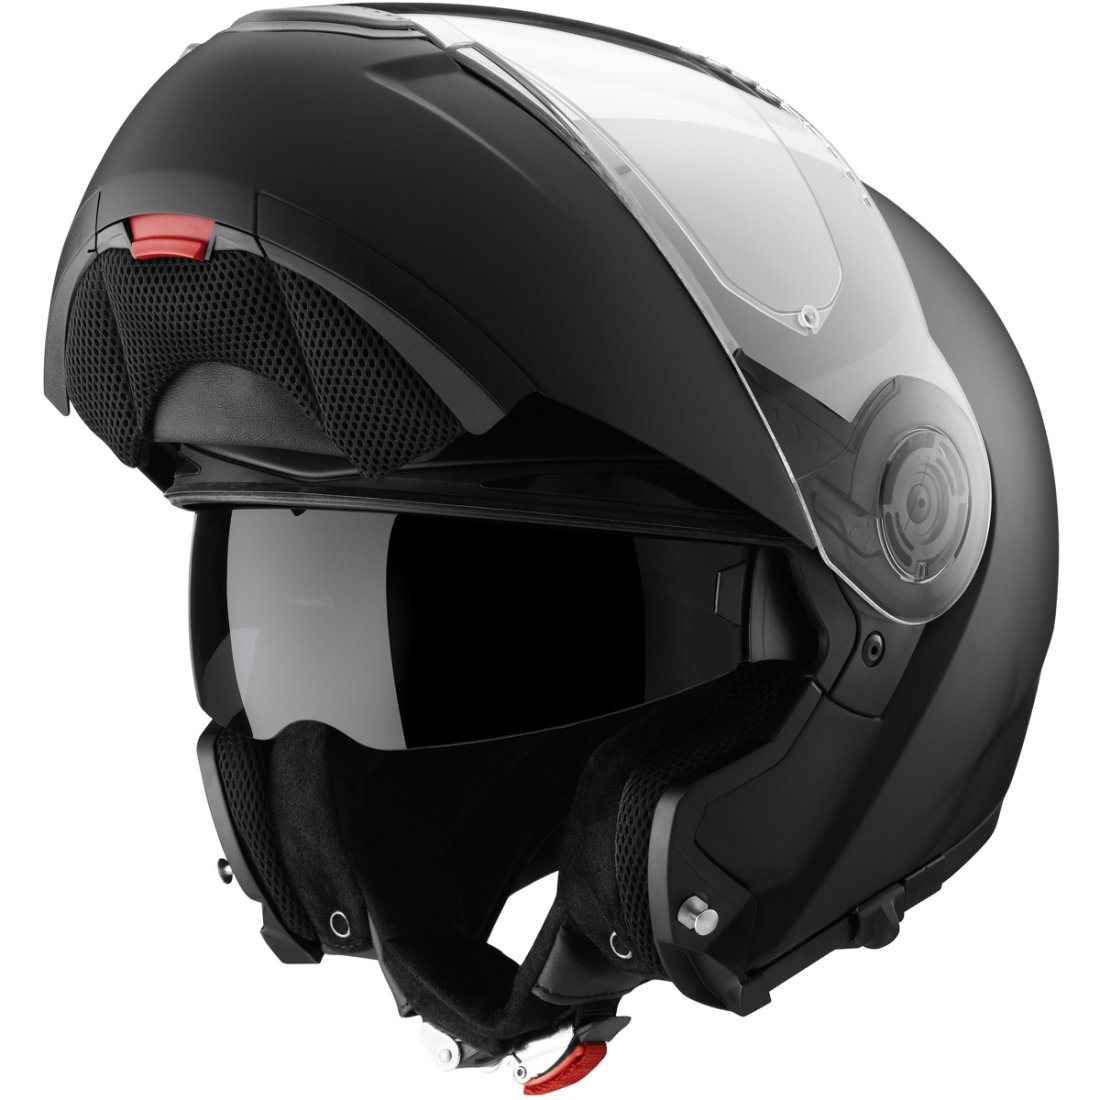 schuberth c3 basic matt black helmet motocard. Black Bedroom Furniture Sets. Home Design Ideas